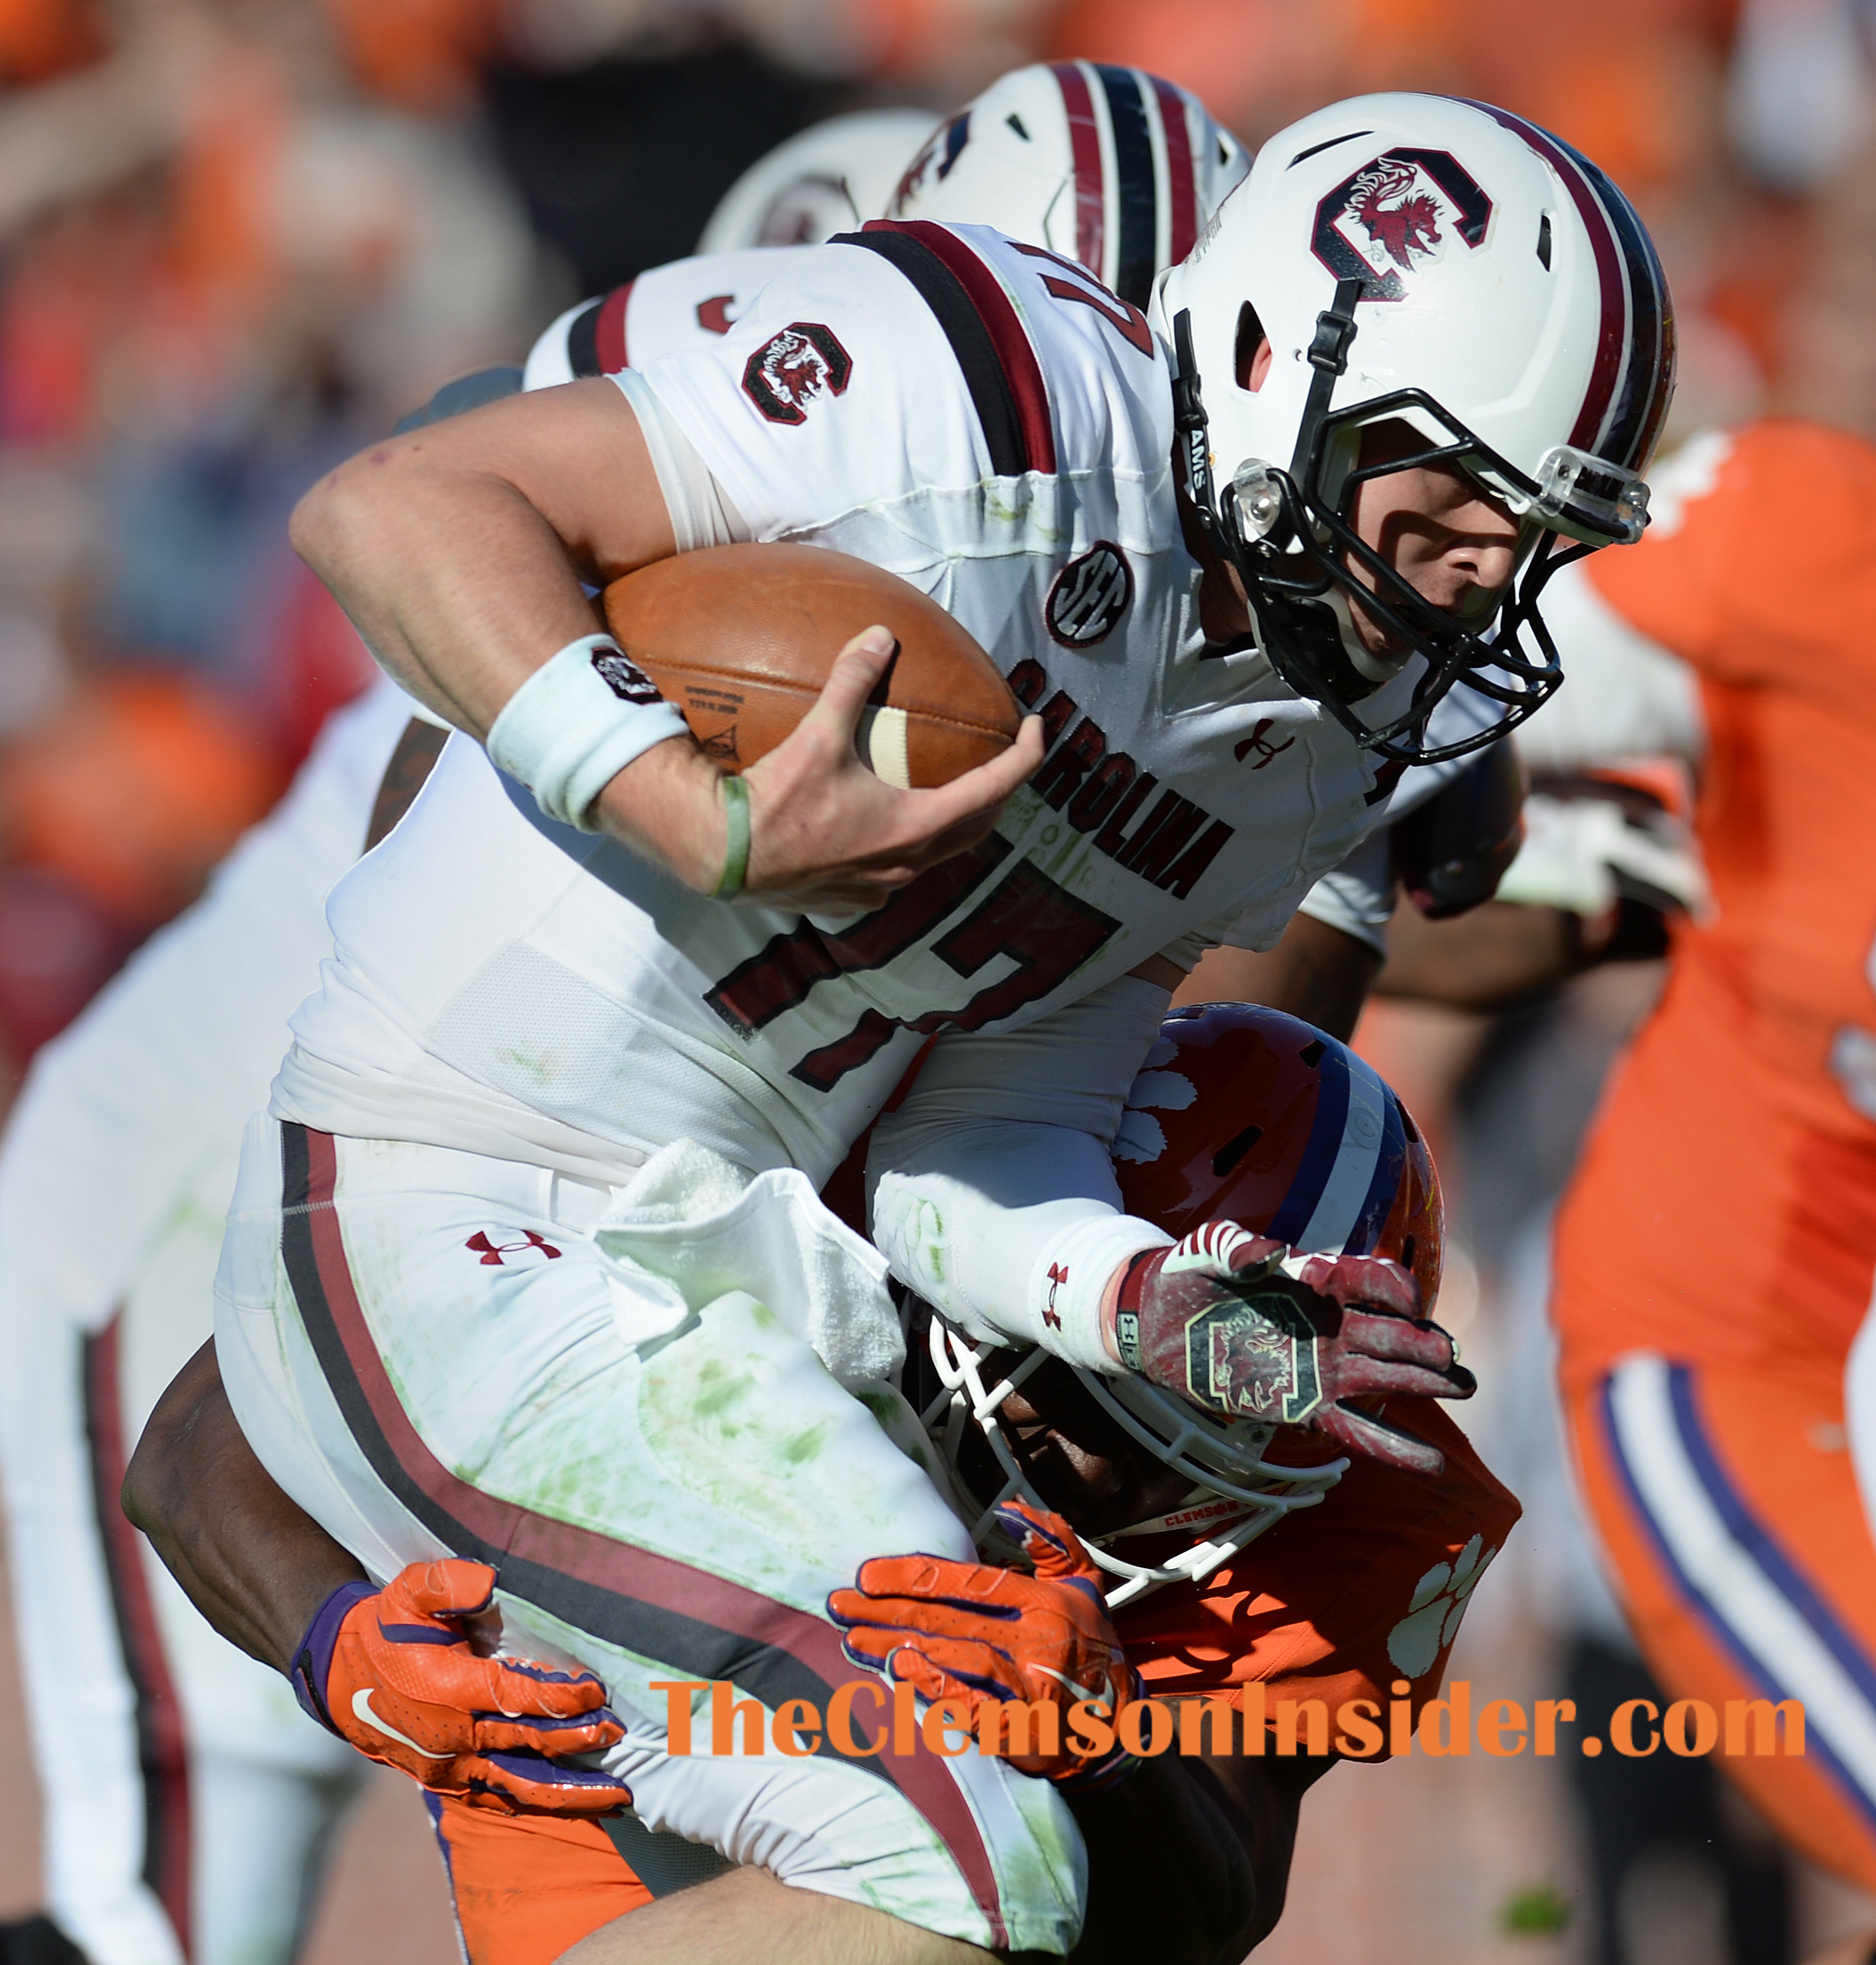 Clemson linebacker Tony Steward (7) tackles USC quarterback Dylan Thompson (17) during the Tigers goal line stand during the 3rd quarter Saturday, November 29, 2014 at Clemson's Memorial Stadium.